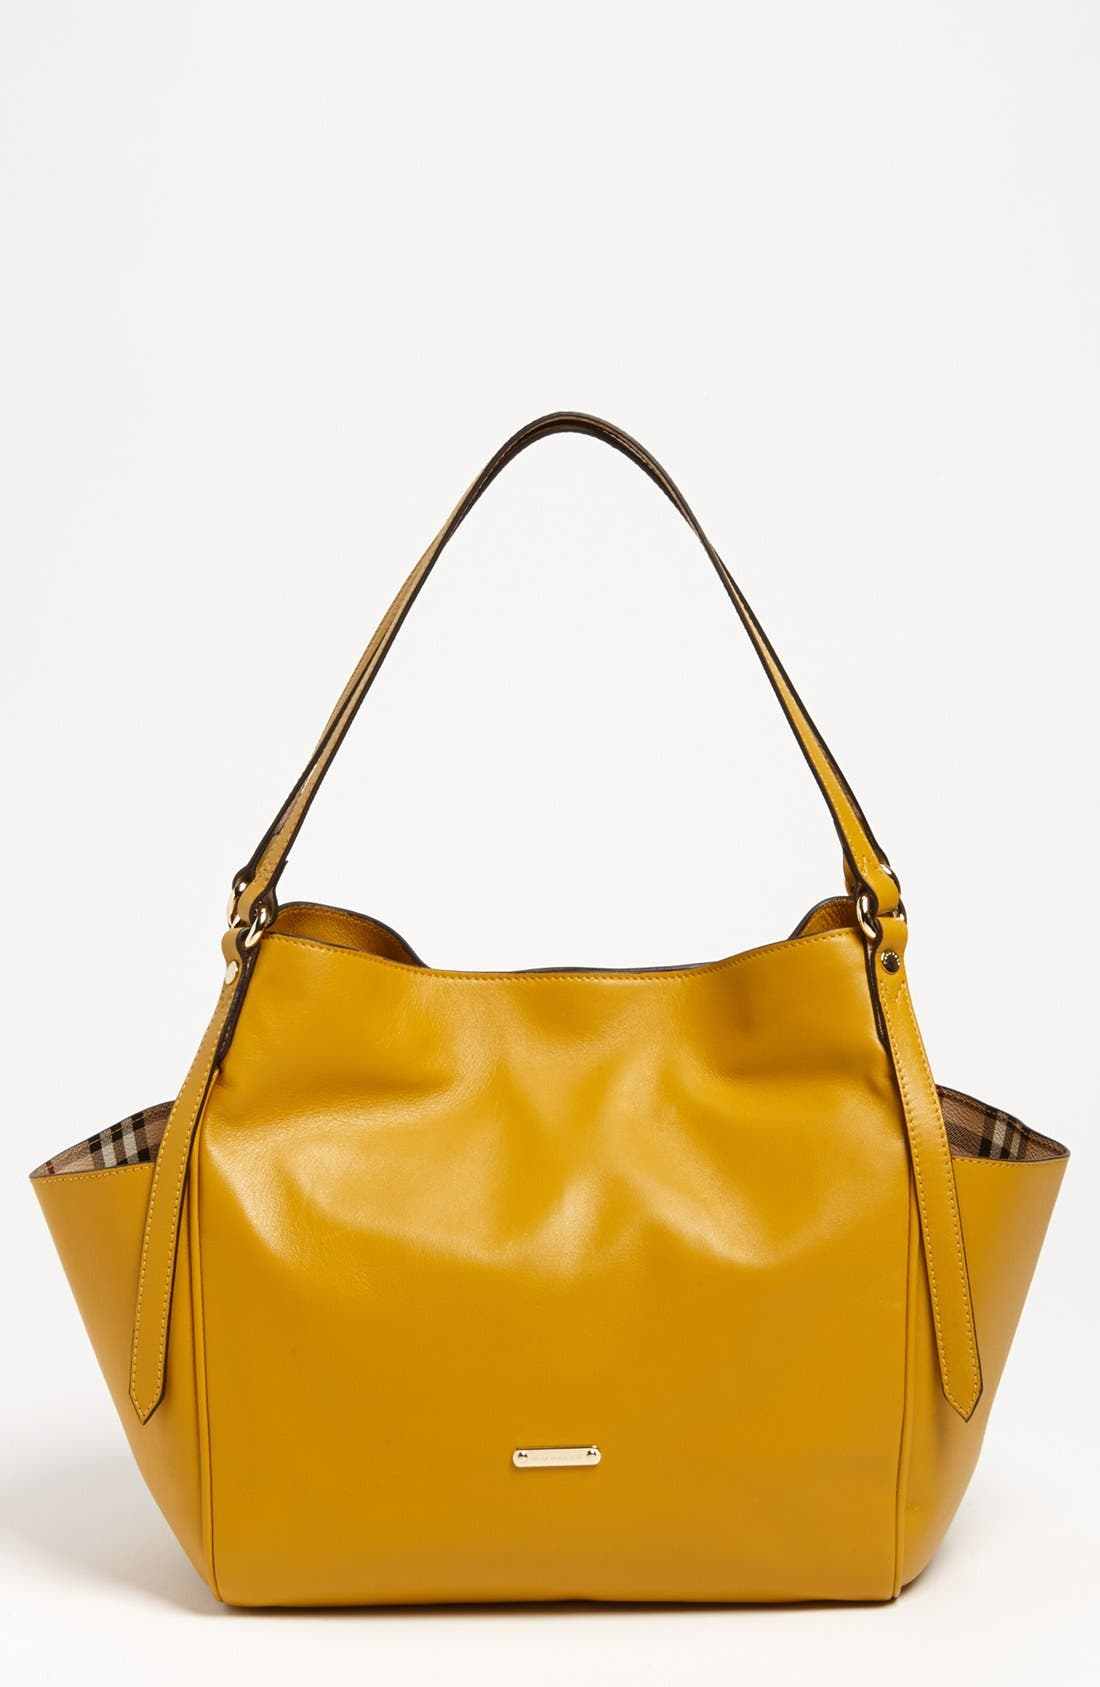 Alternate Image 1 Selected - Burberry 'Canterbury - Small' Leather Tote